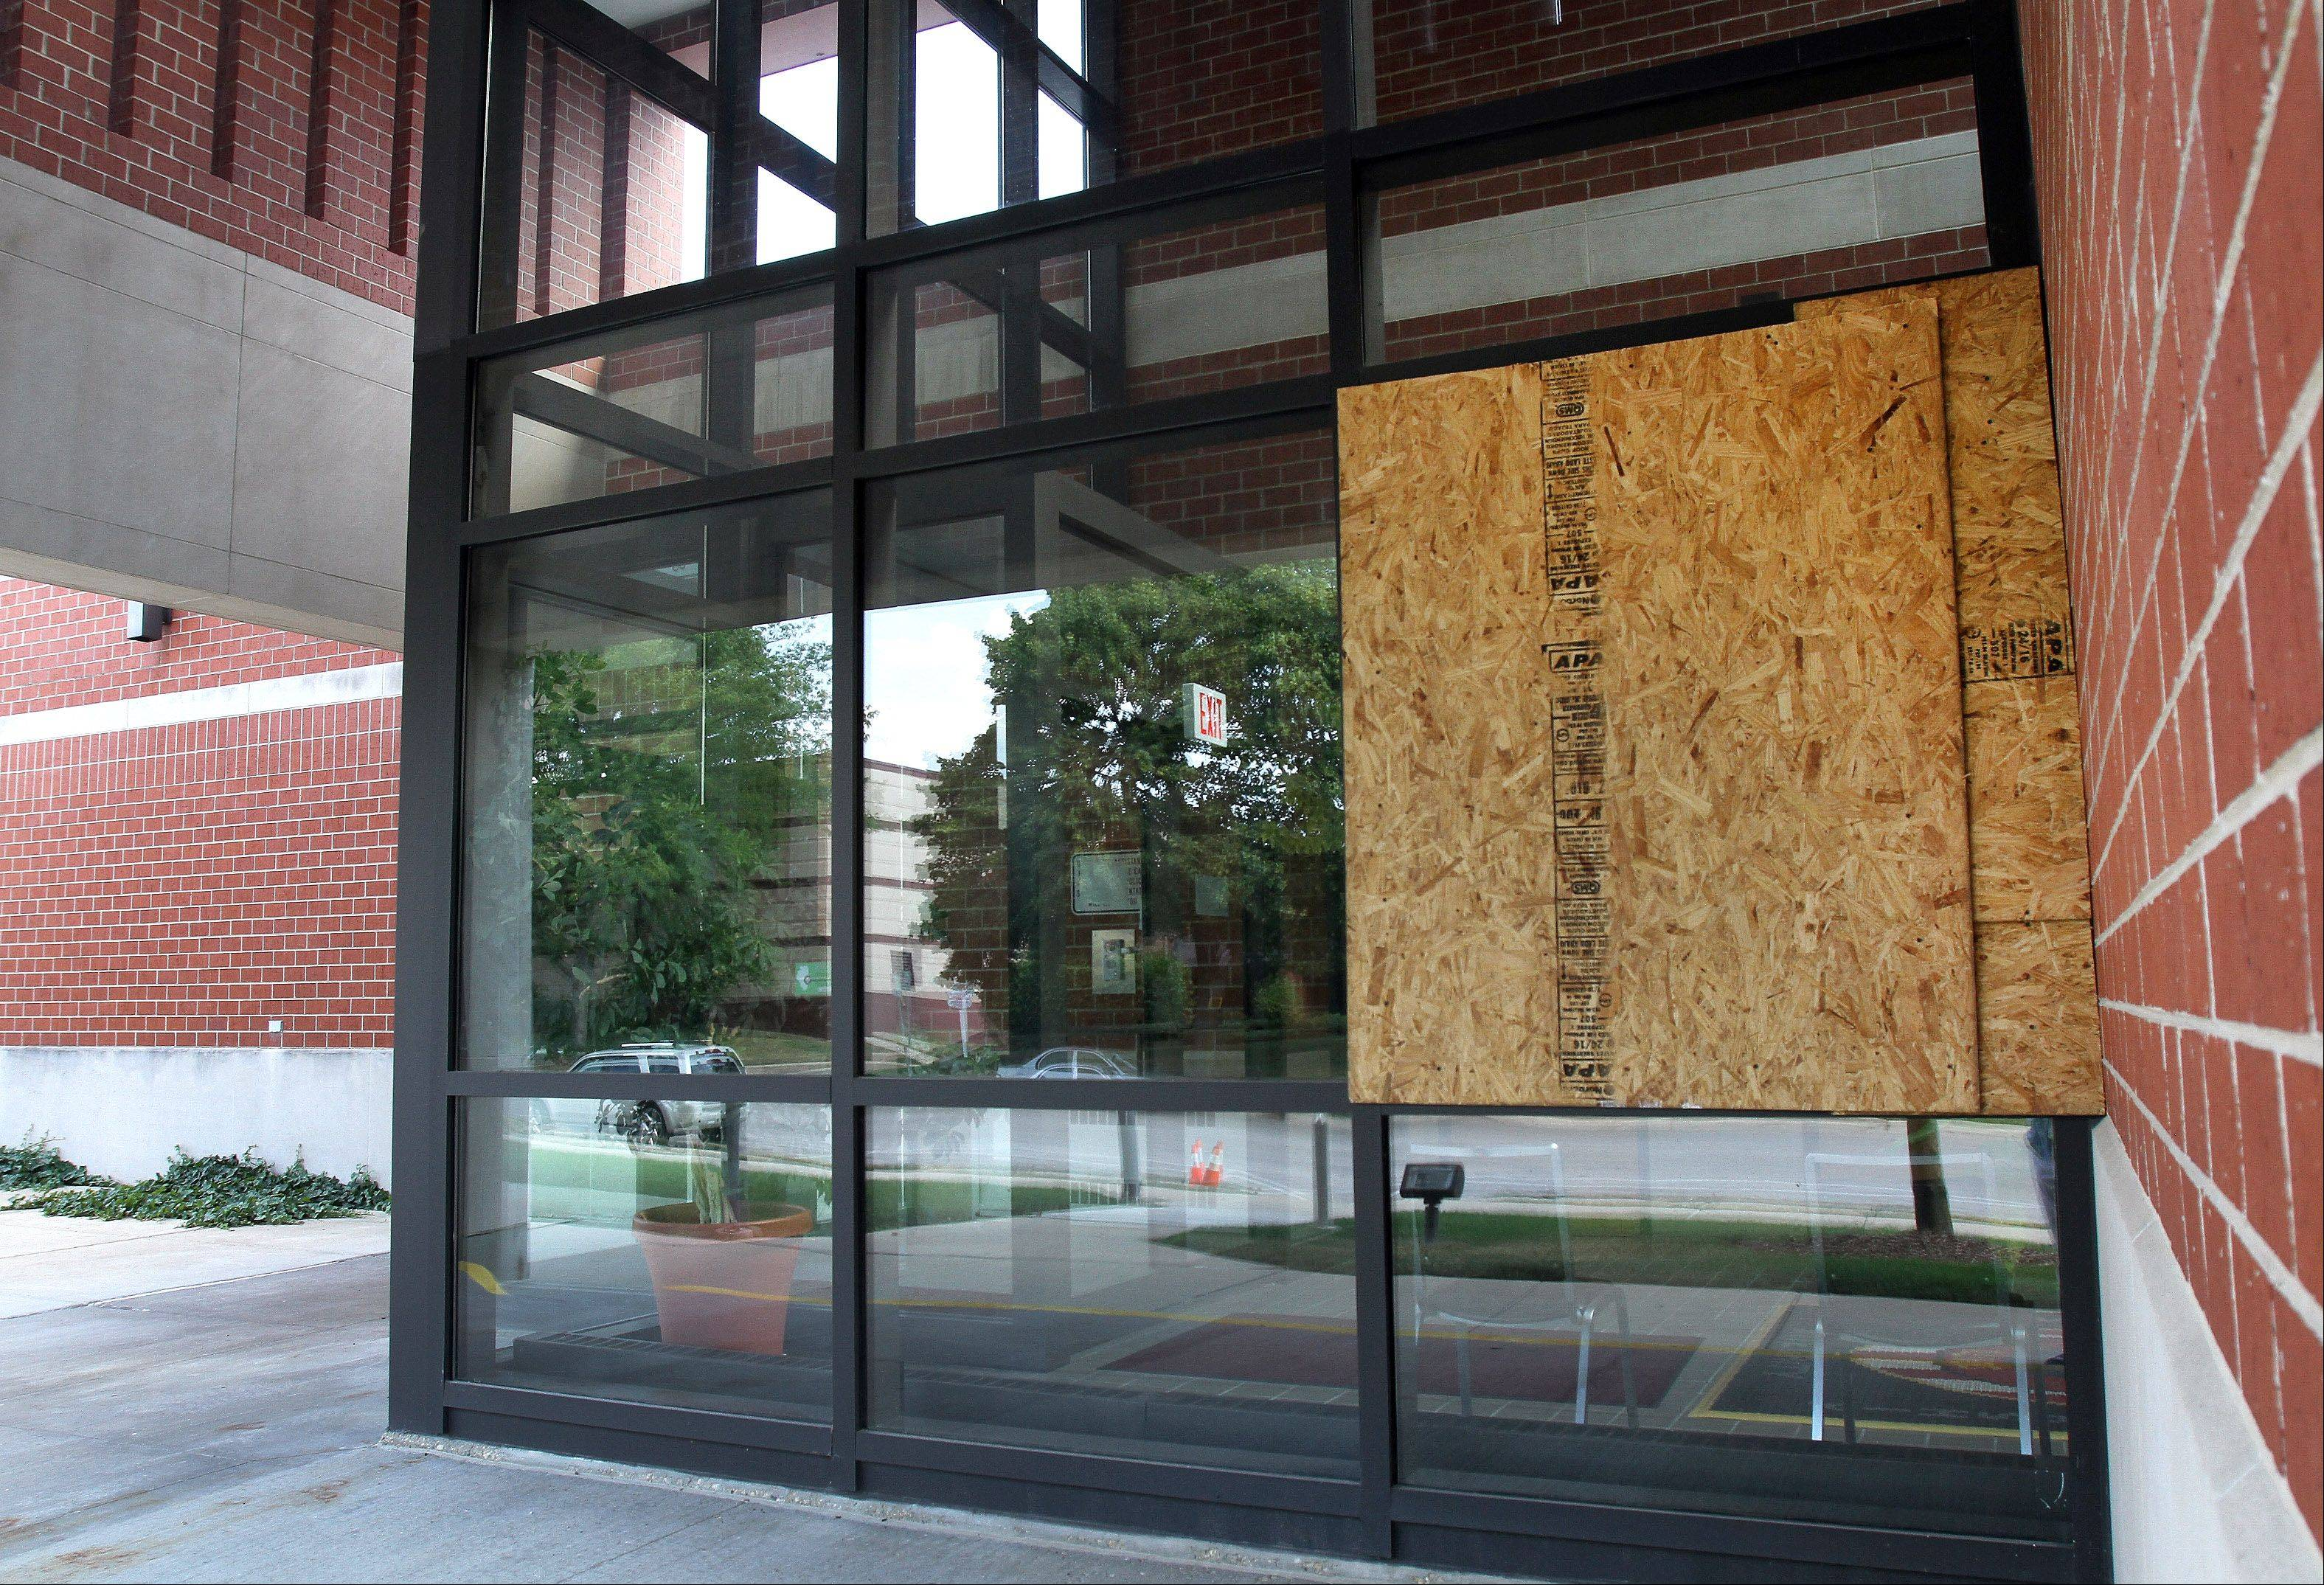 Wheaton police boarded up a lobby window after Robert Davison threw a brick through it in July. He has been sentenced to a year in prison.